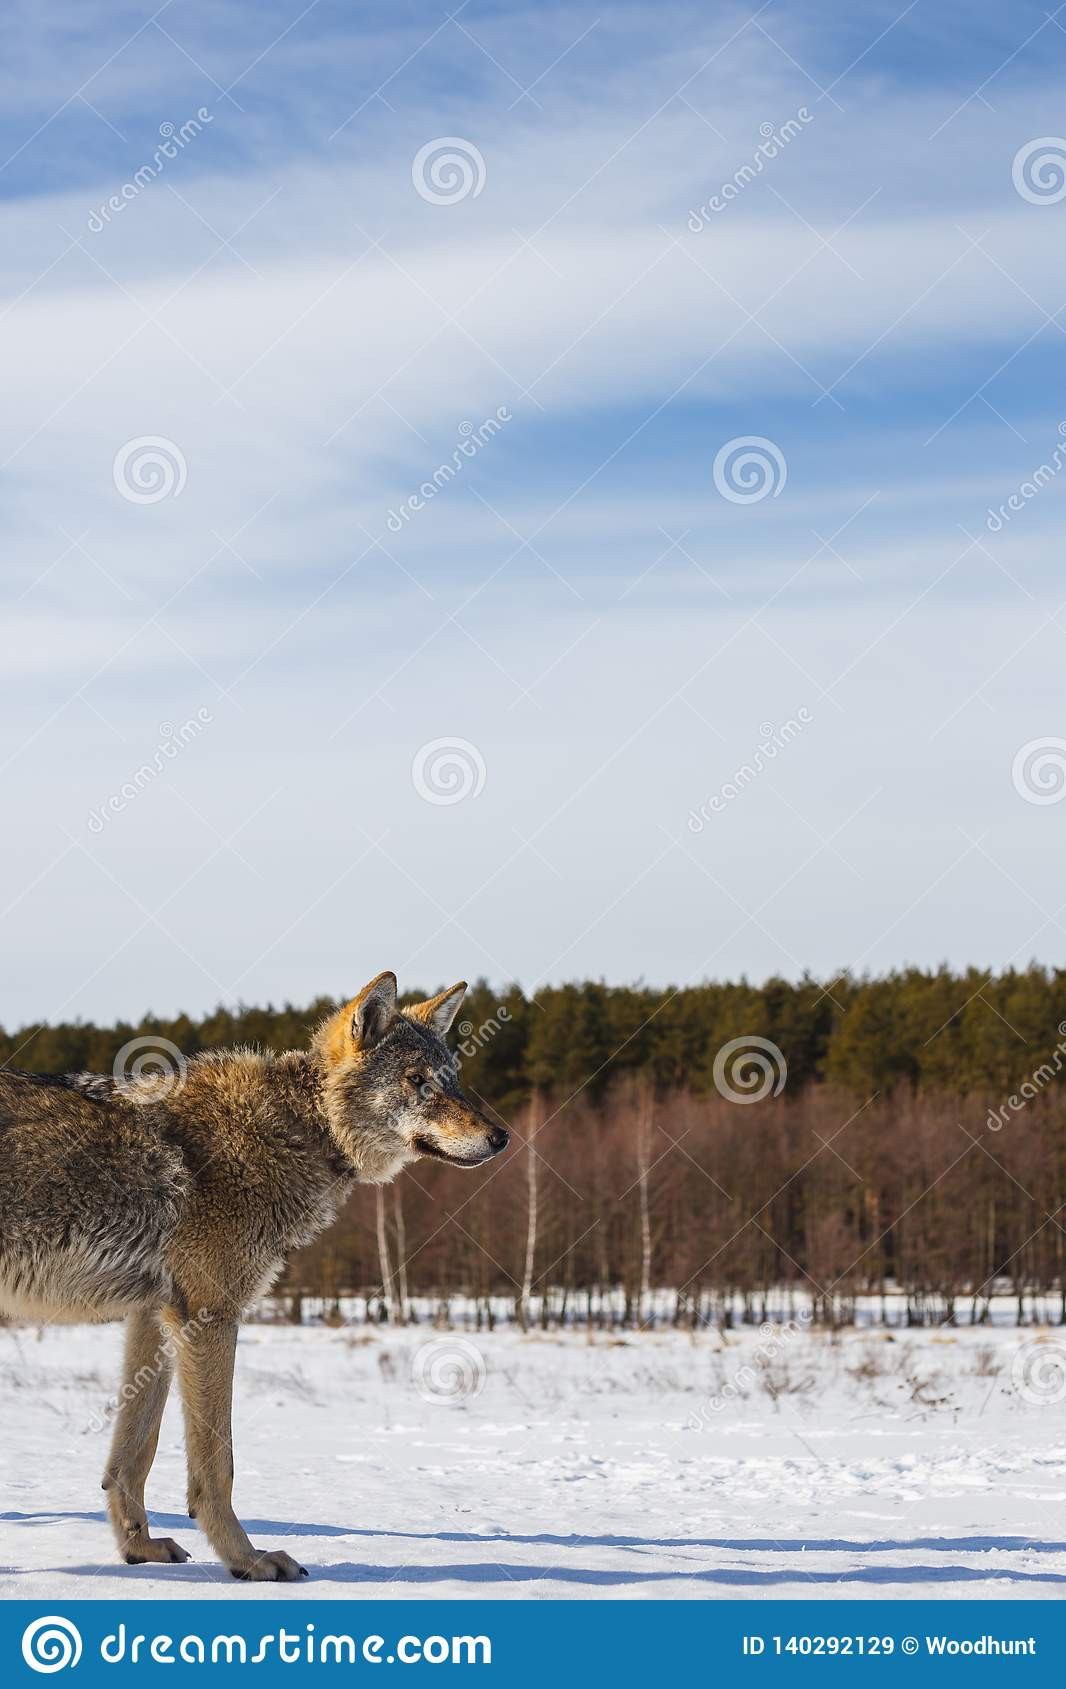 Profile of a gray wolf in a field against a snowy sky and a forest in the distance